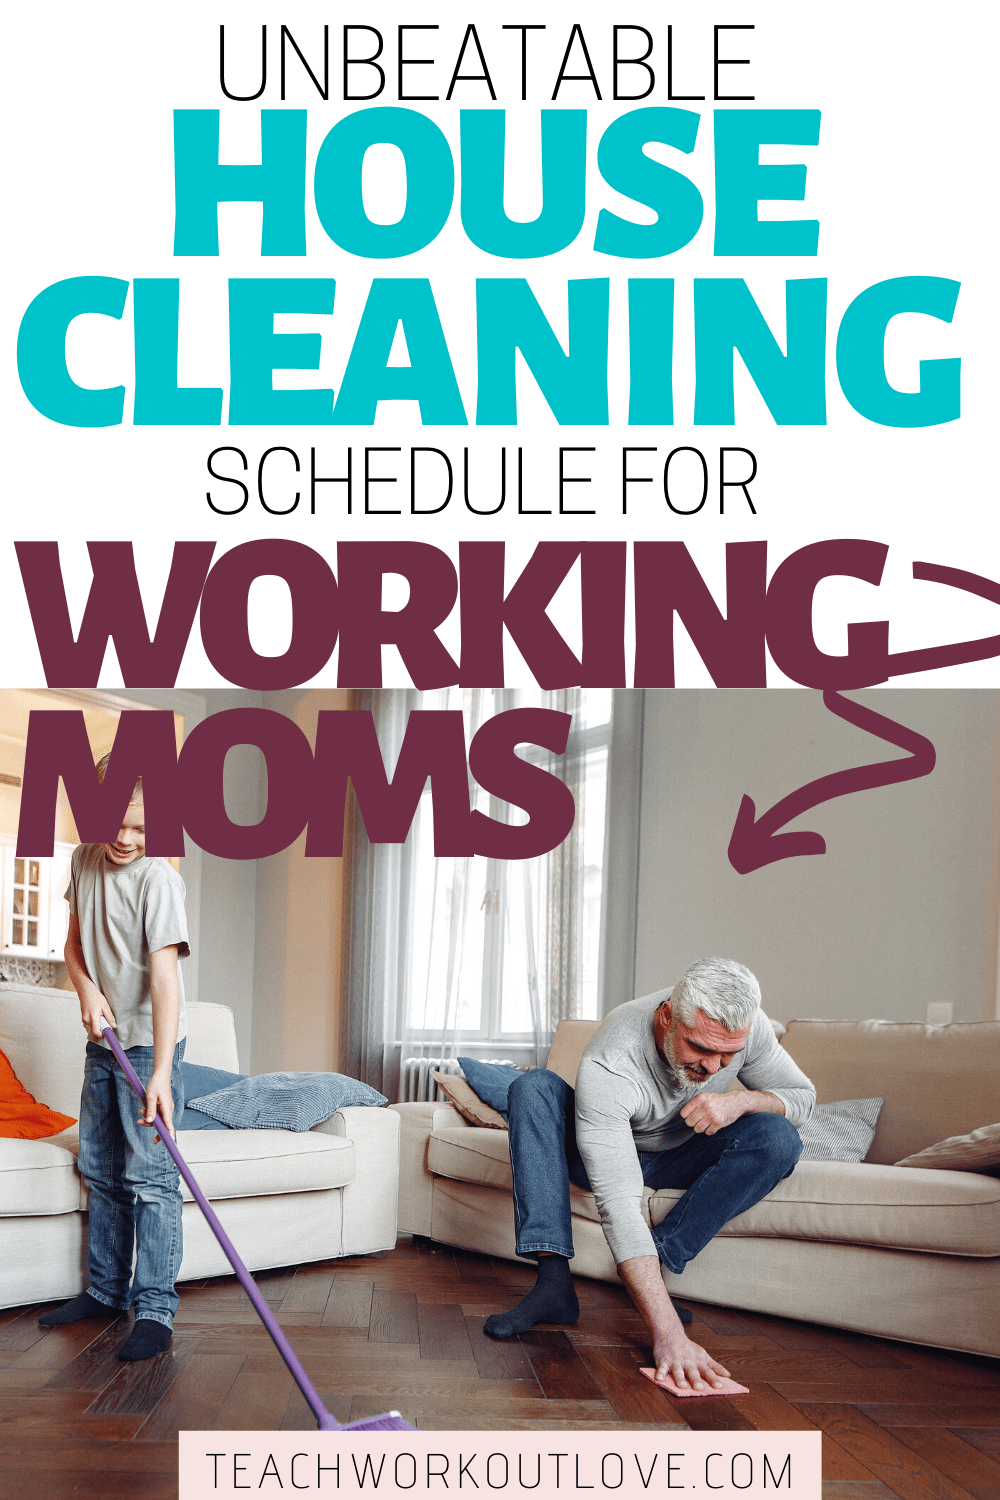 Learn how to keep your house clean with this simple house cleaning schedule. Create a checklist of housekeeping tasks that will work for you.